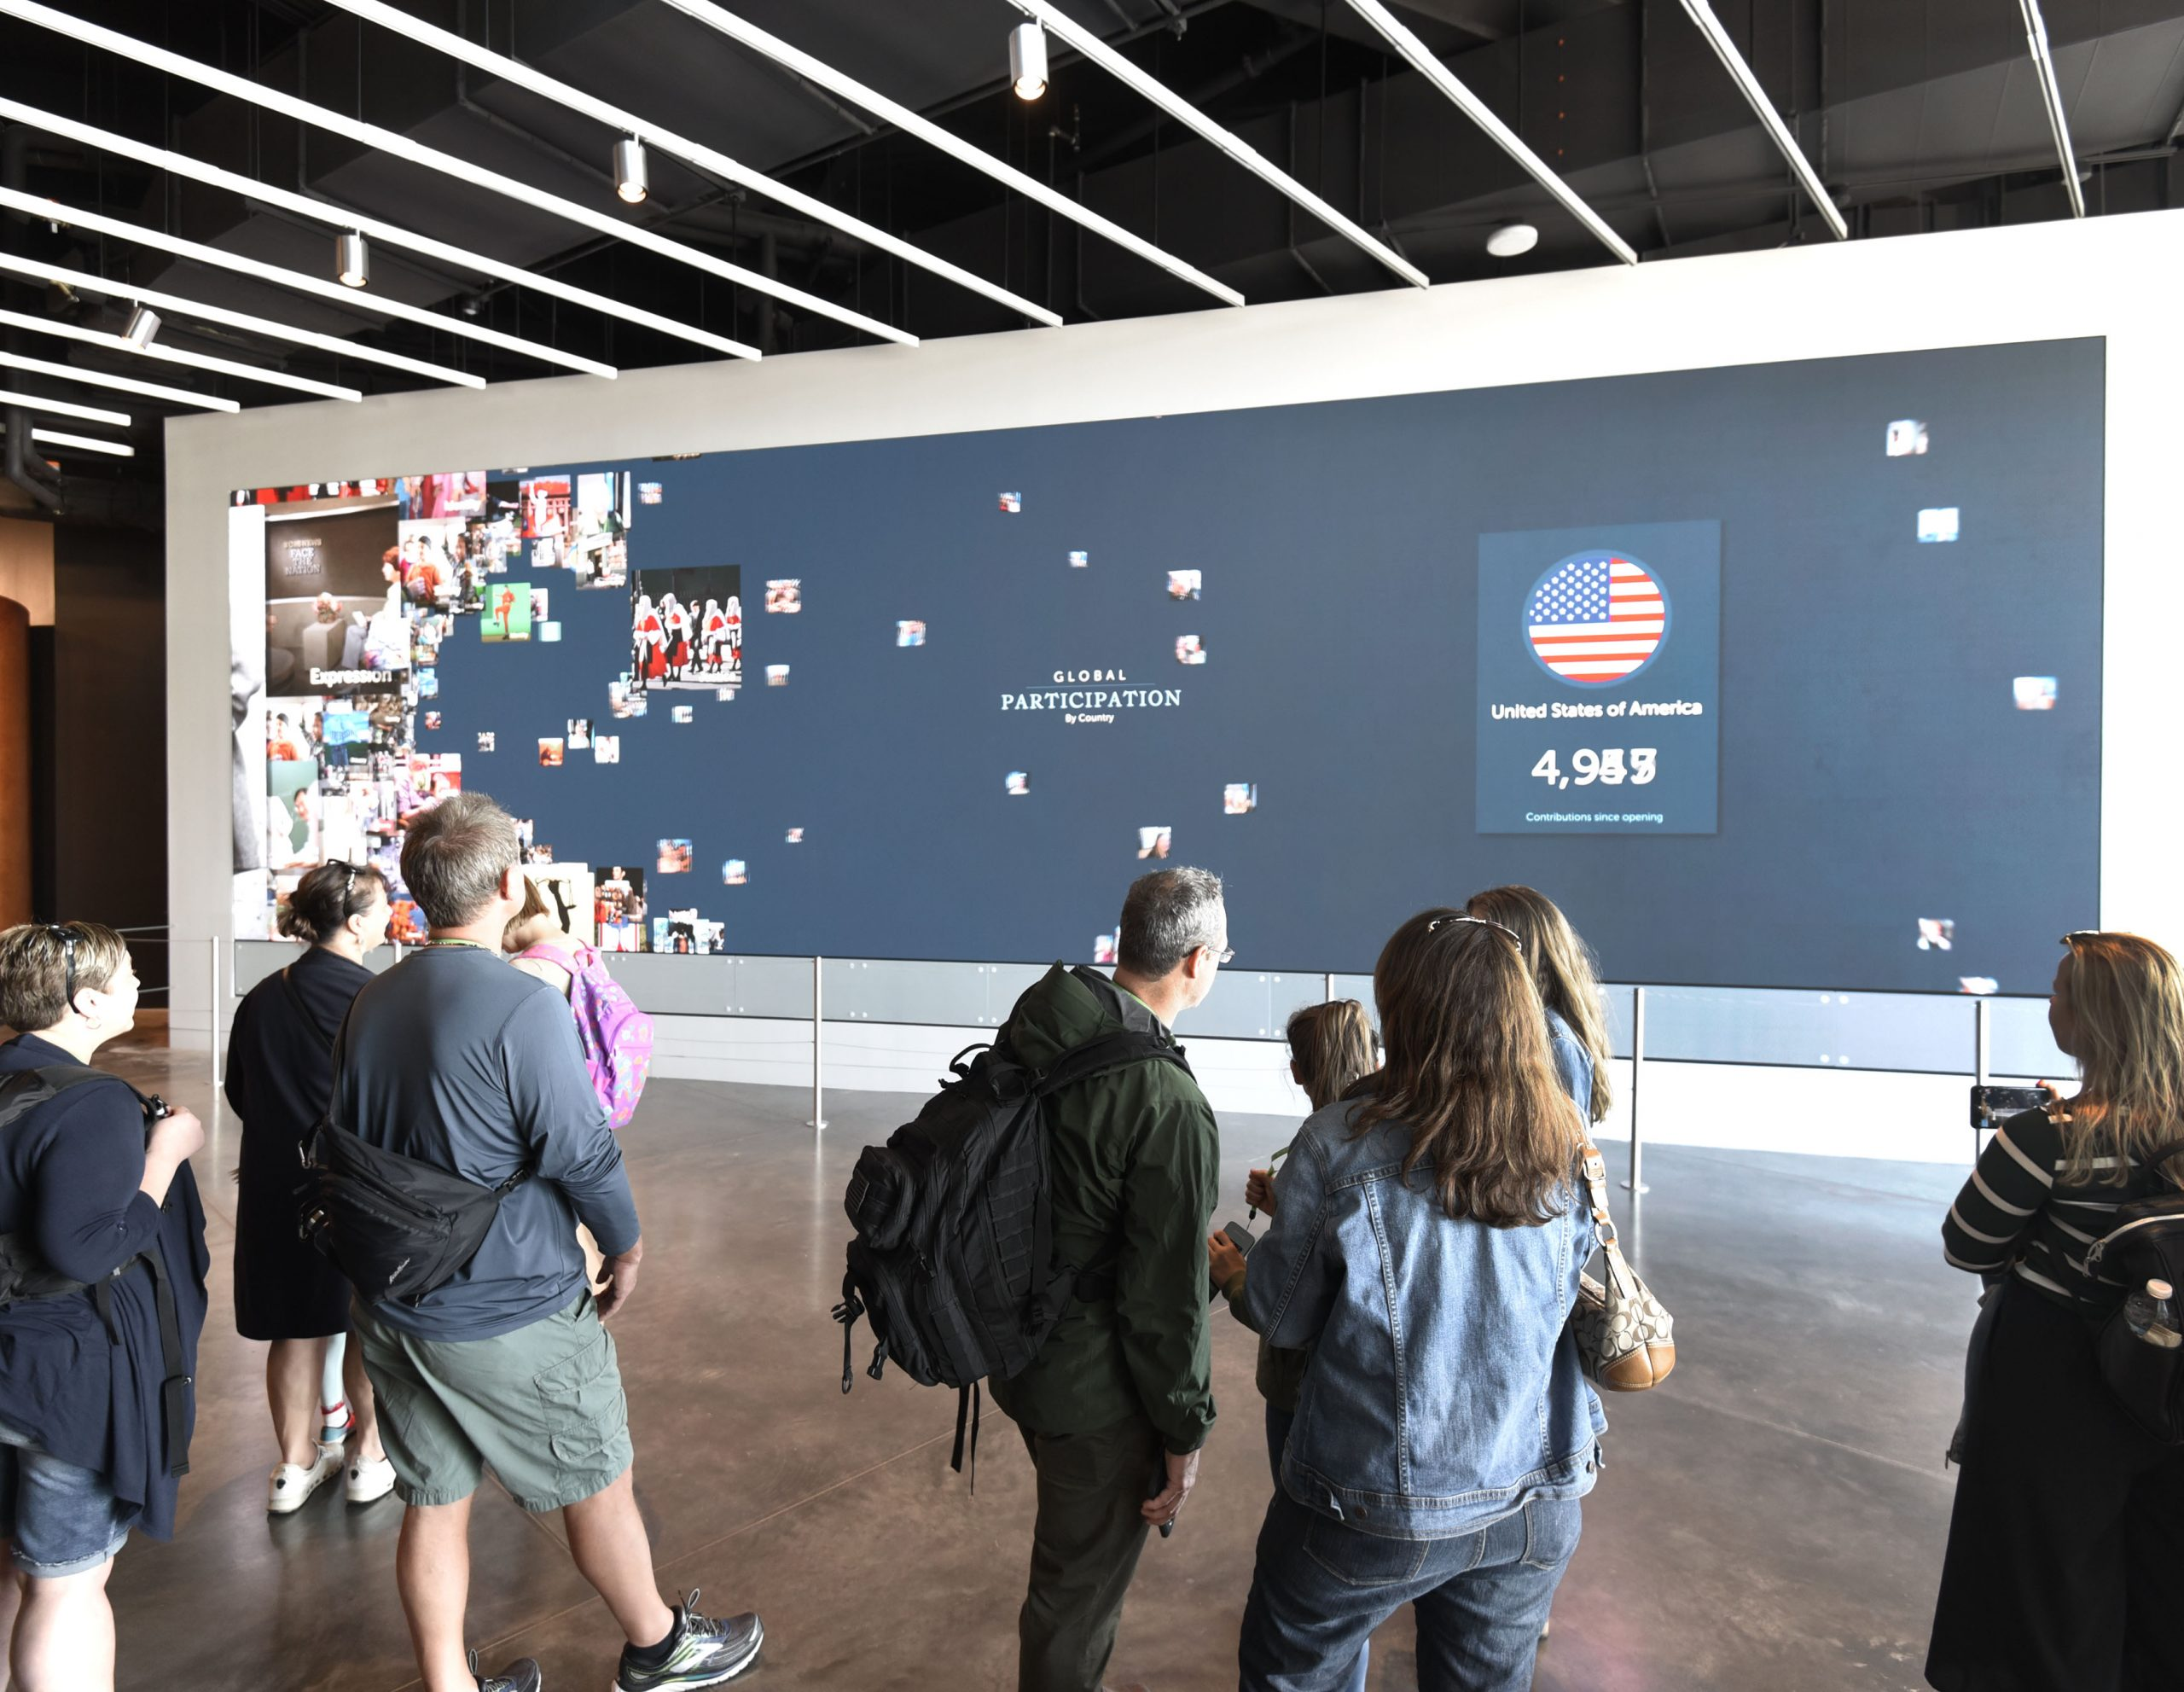 large interactive videowall being viewed by a crowd